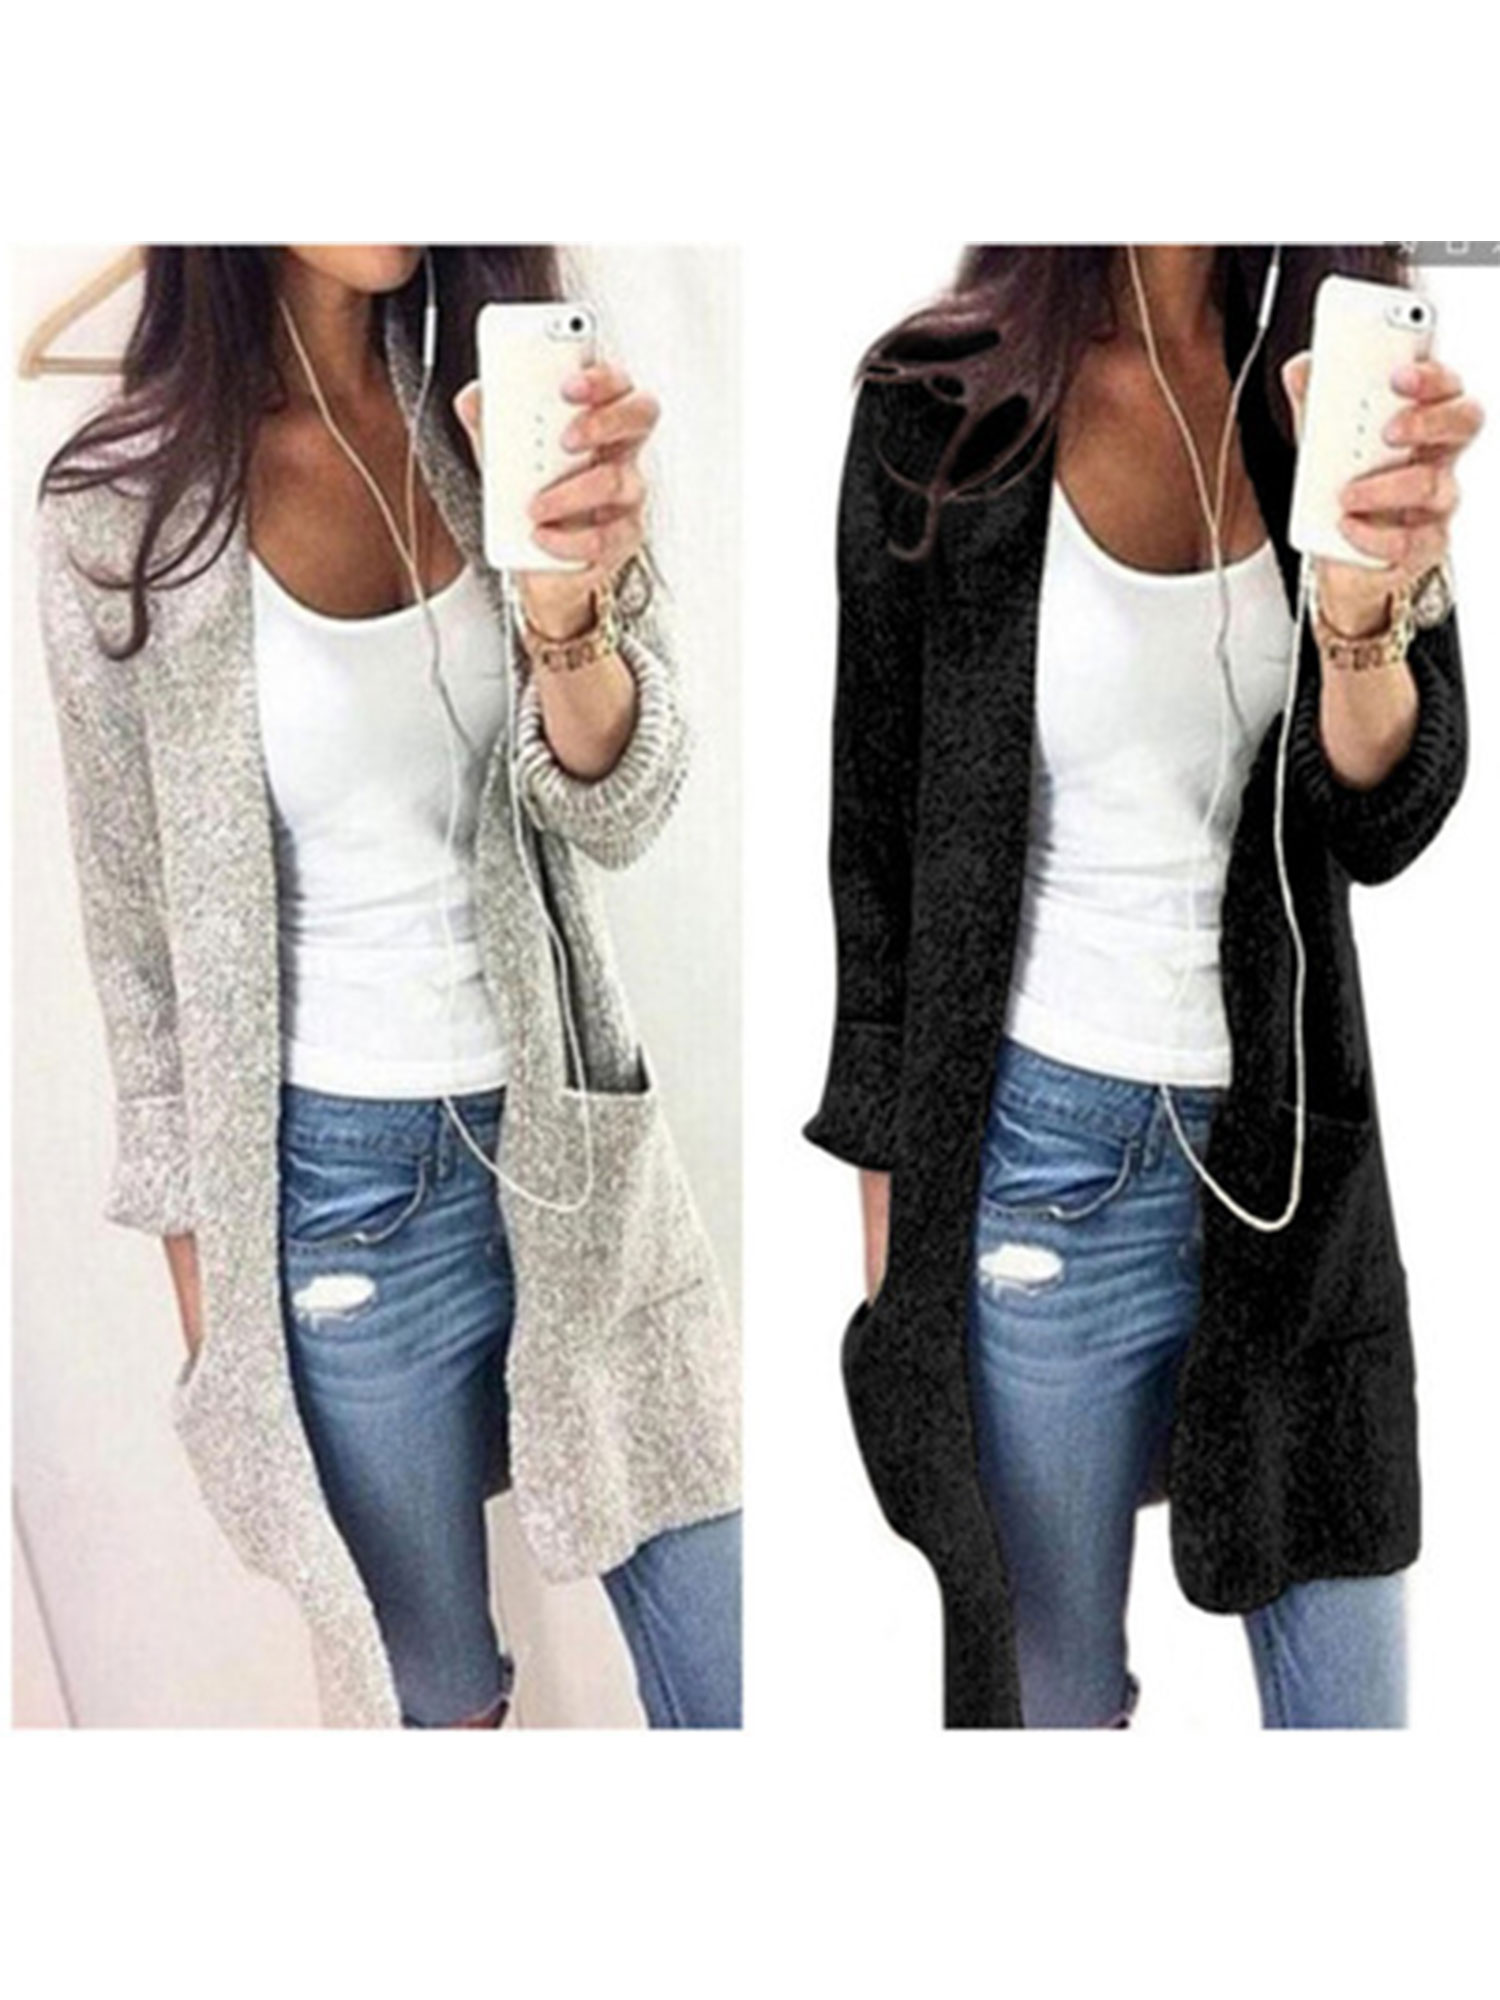 Black Friday Clearance! Long Sleeve Cardigan Sweaters for Women, Womens Drape Coats for Juniors, Black / Gray Casual Open Front Knitted Cardigan Gift for Ladies, S-XL